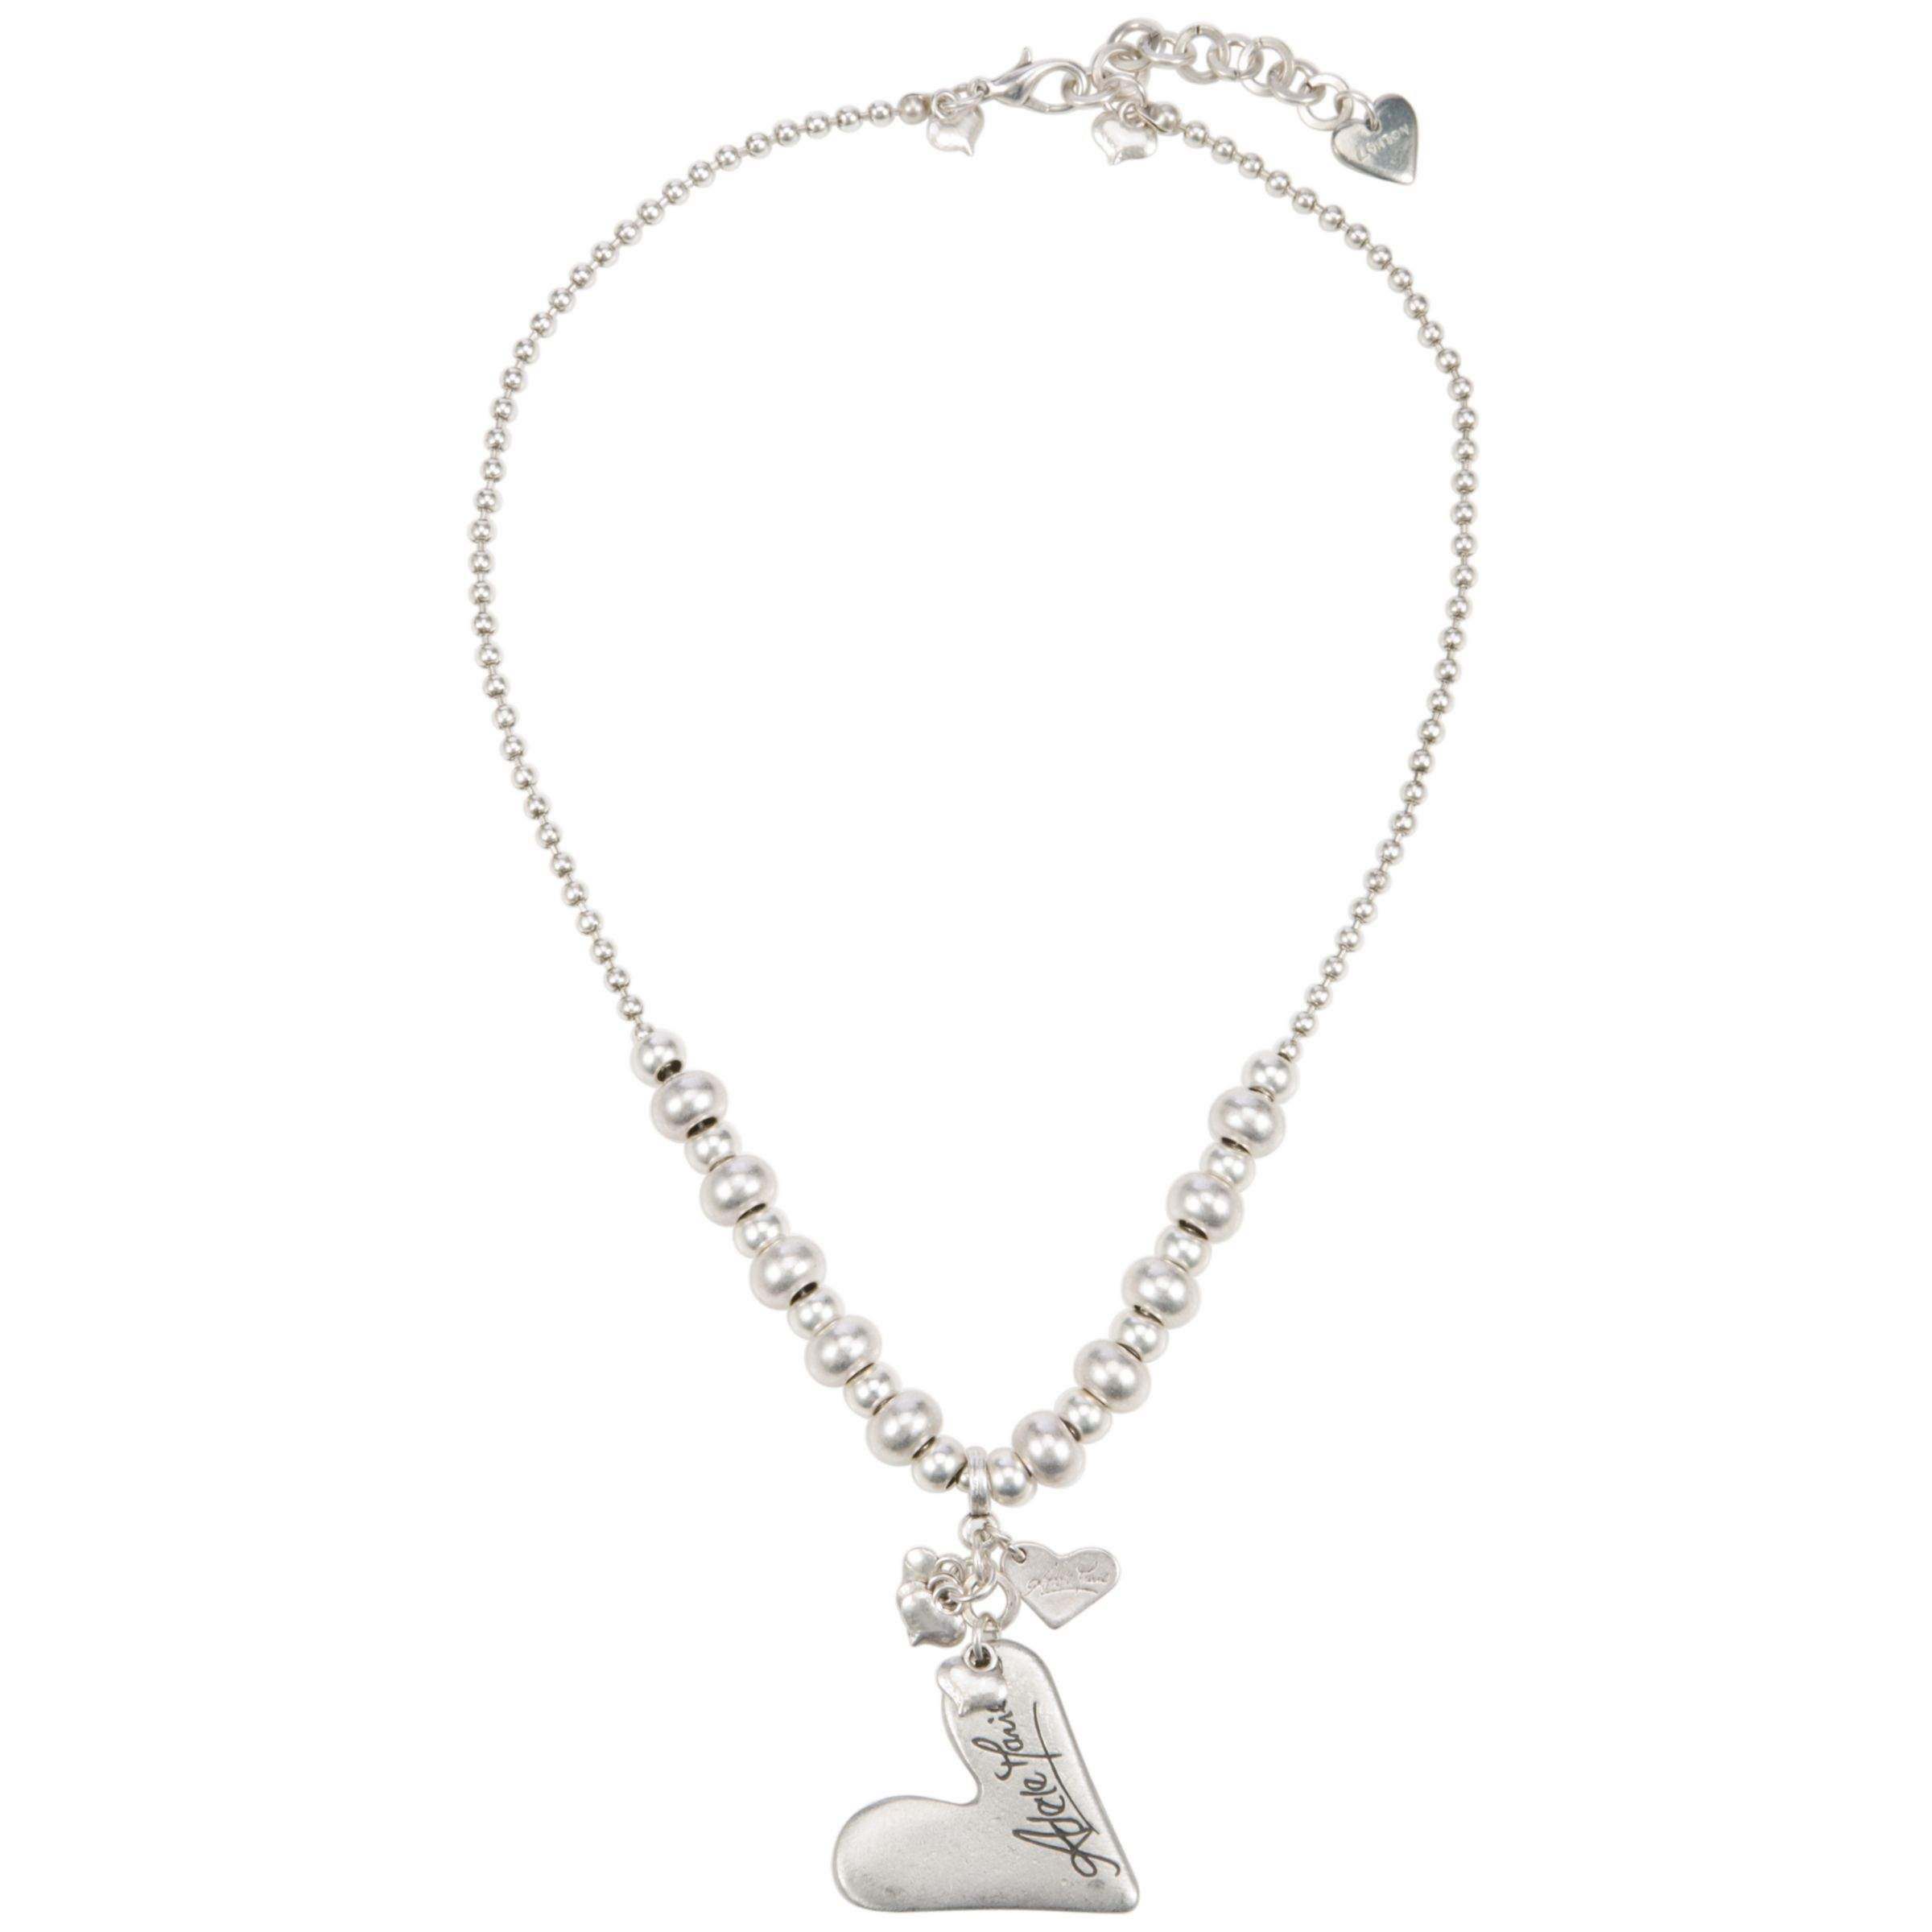 Adele Marie Silver Plated Ball Chain and Heart Charm Necklace